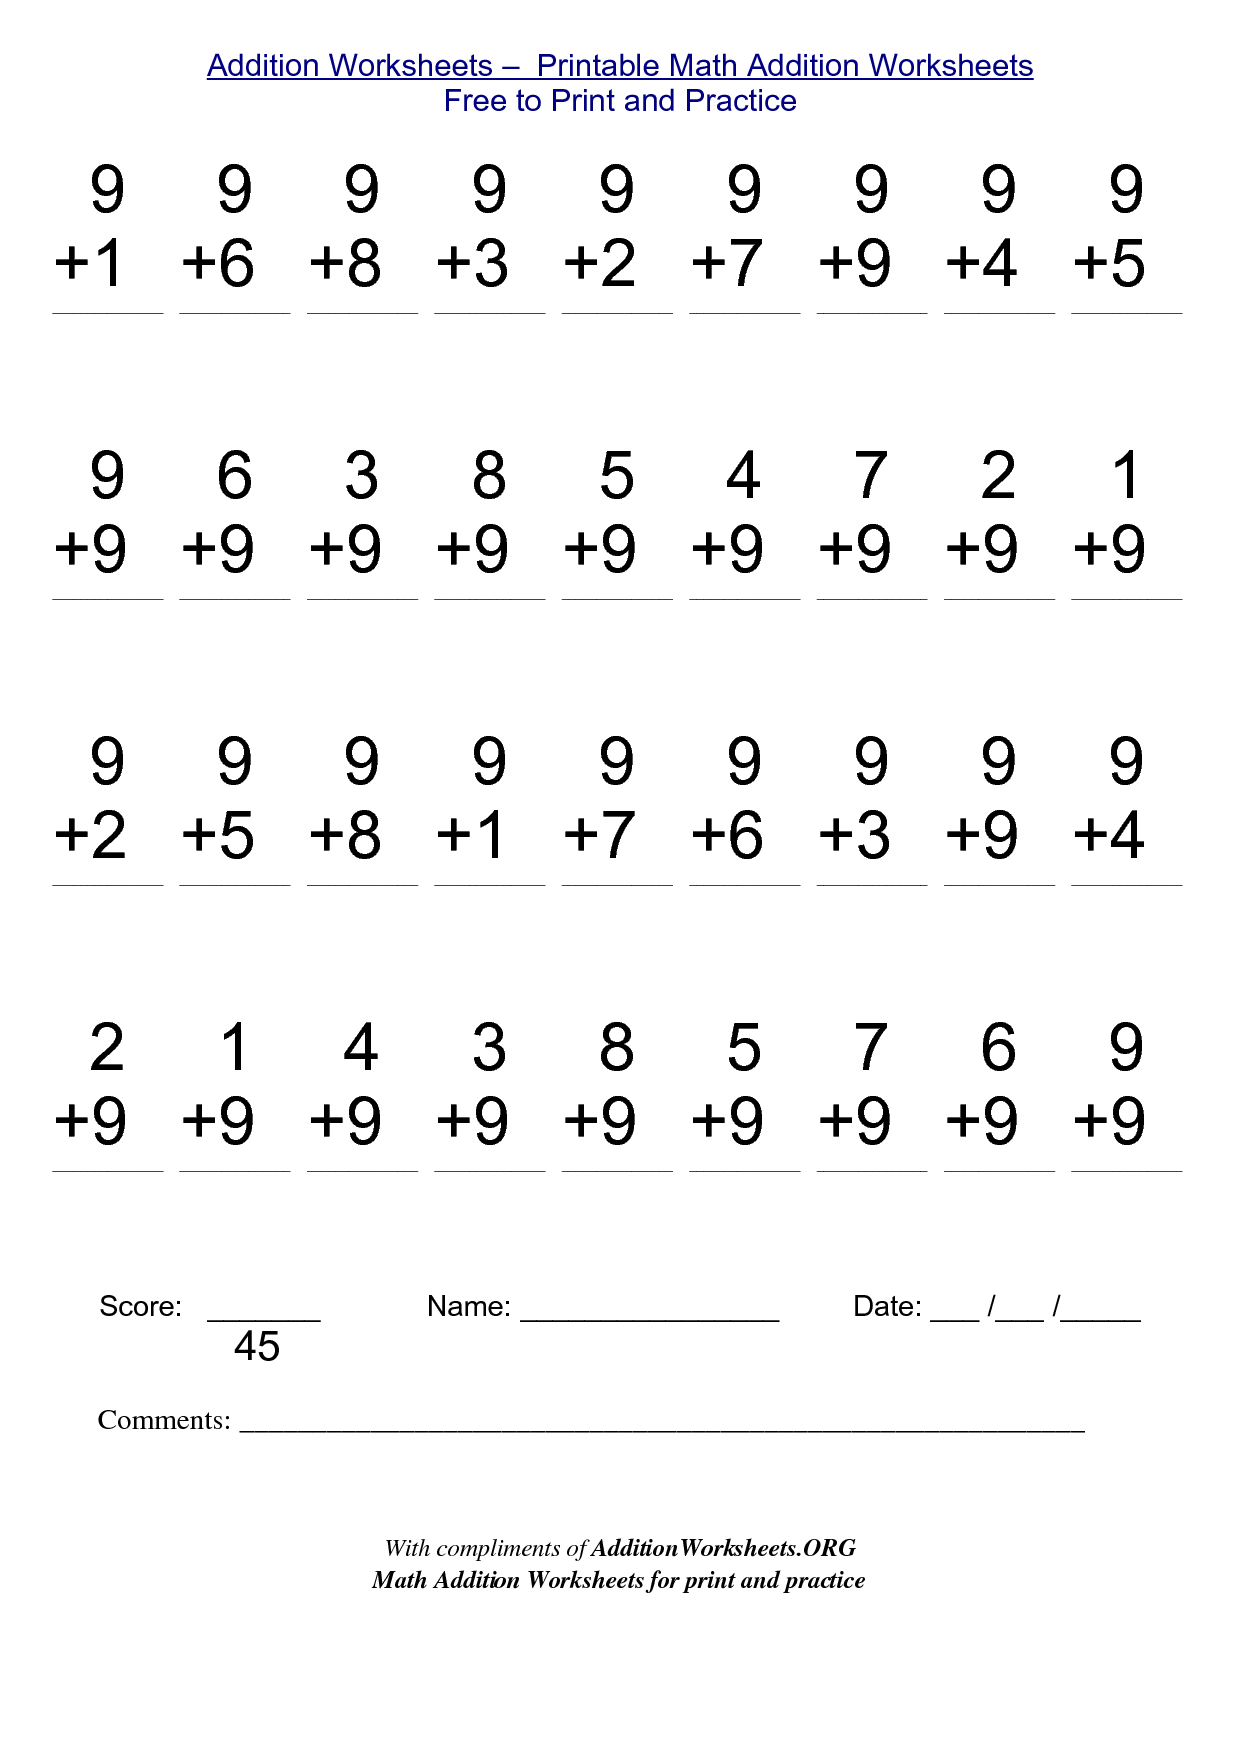 Math Worksheets for Free to Print Alot ME – Free Second Grade Math Worksheets